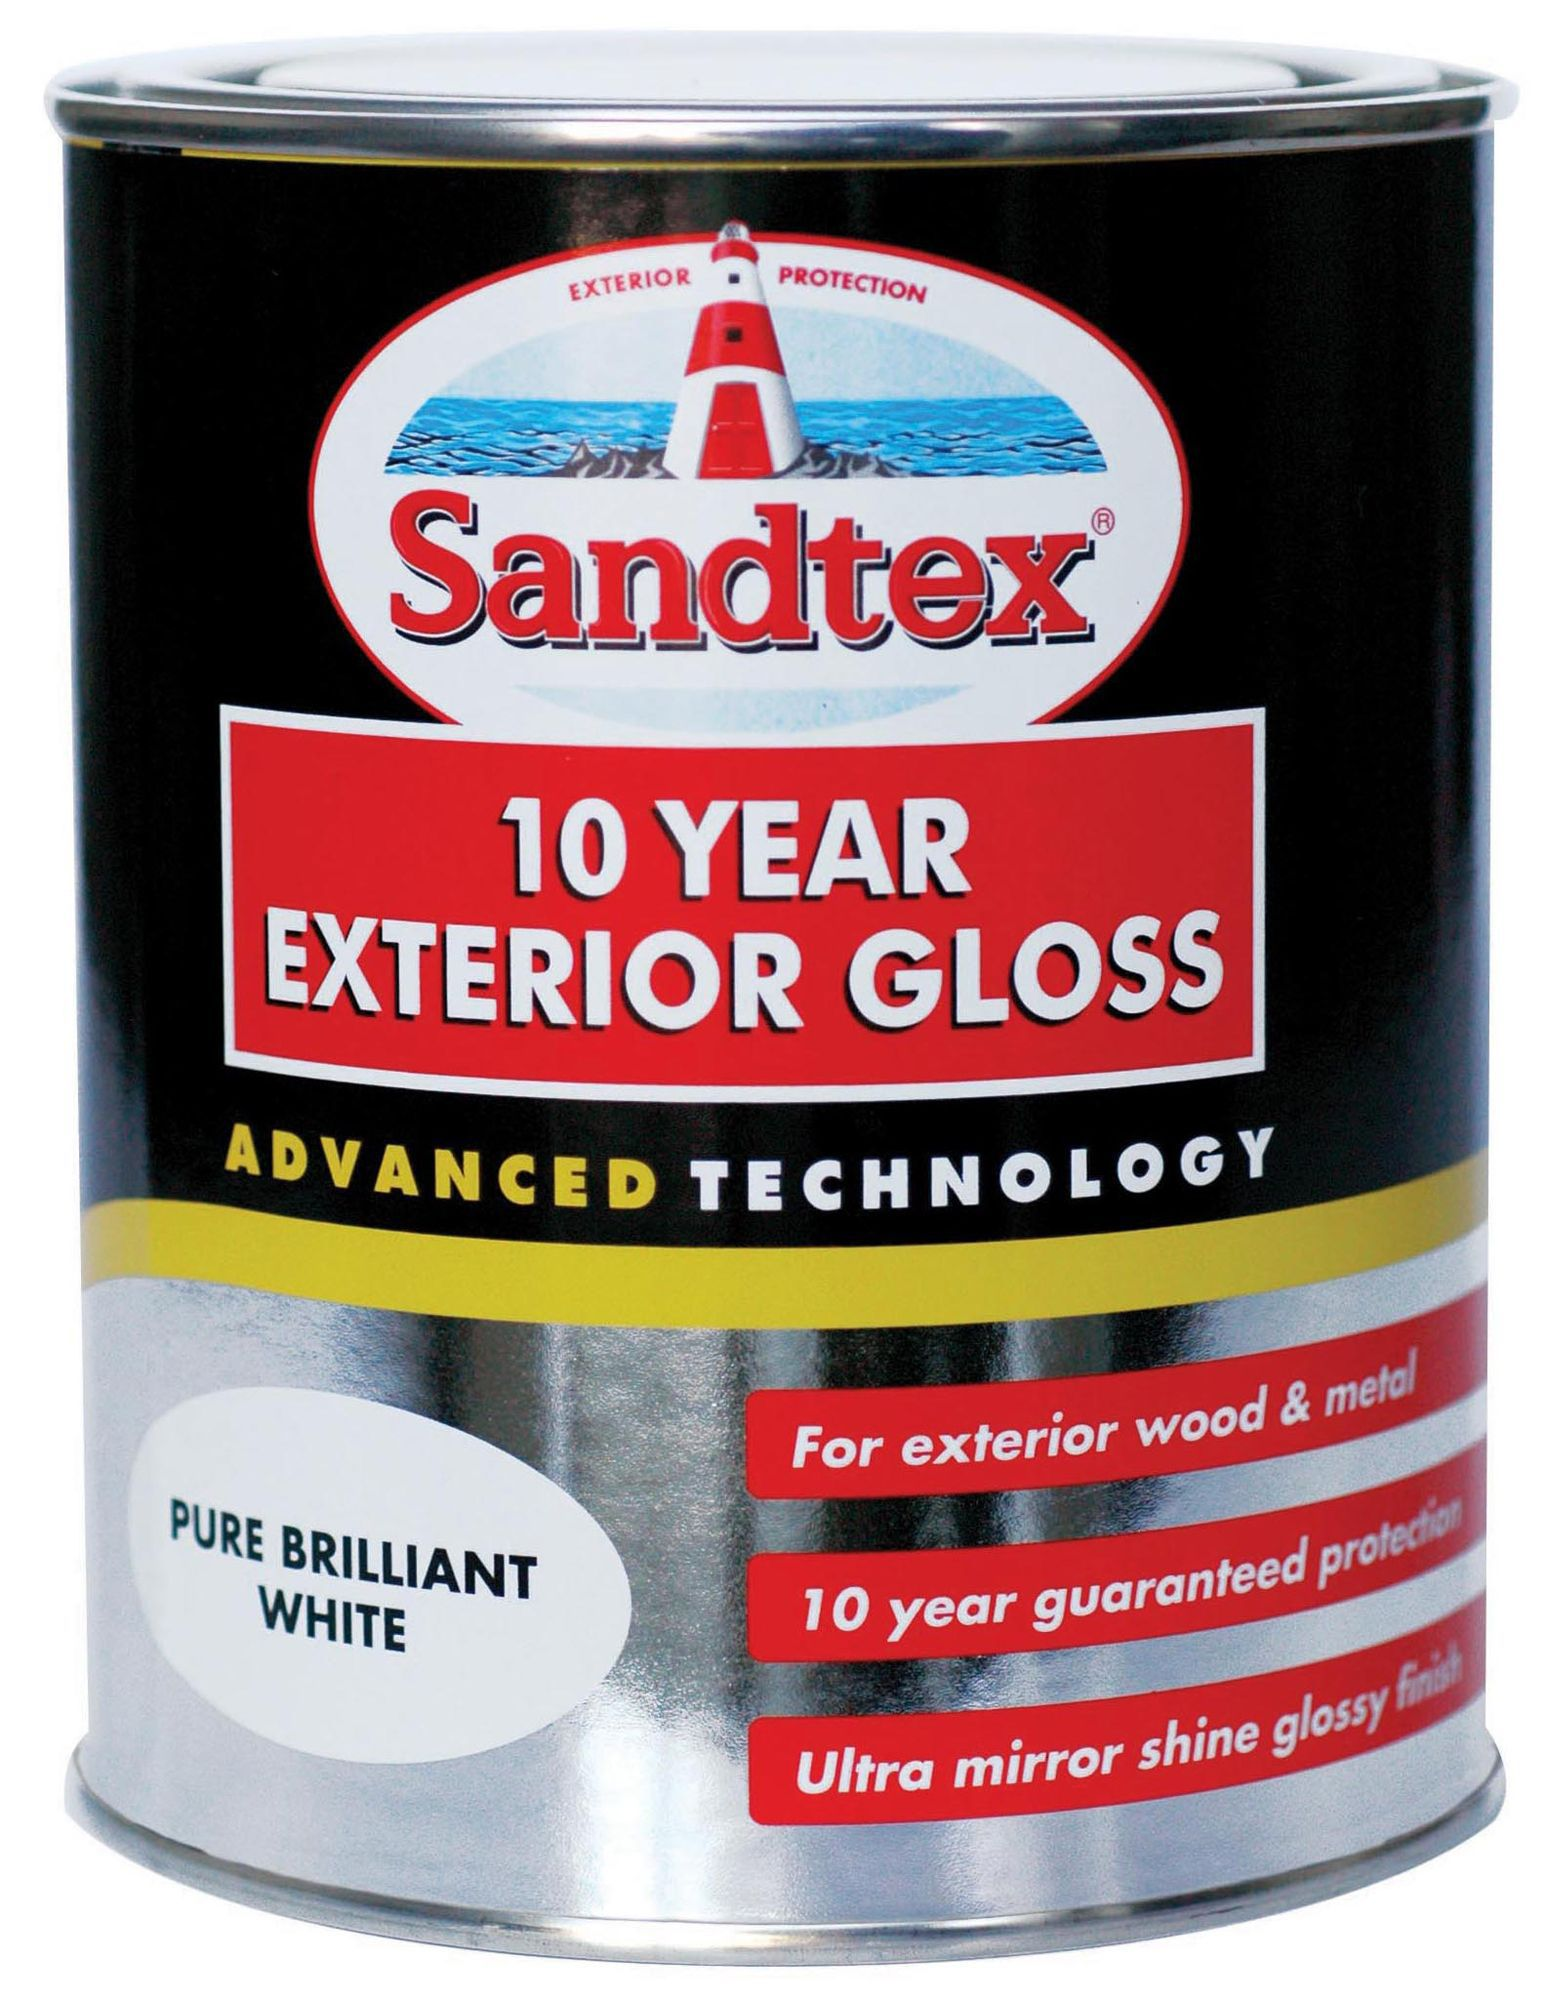 Sandtex Exterior Pure Brilliant White Gloss Wood Metal Paint 750ml Departments Diy At B Q